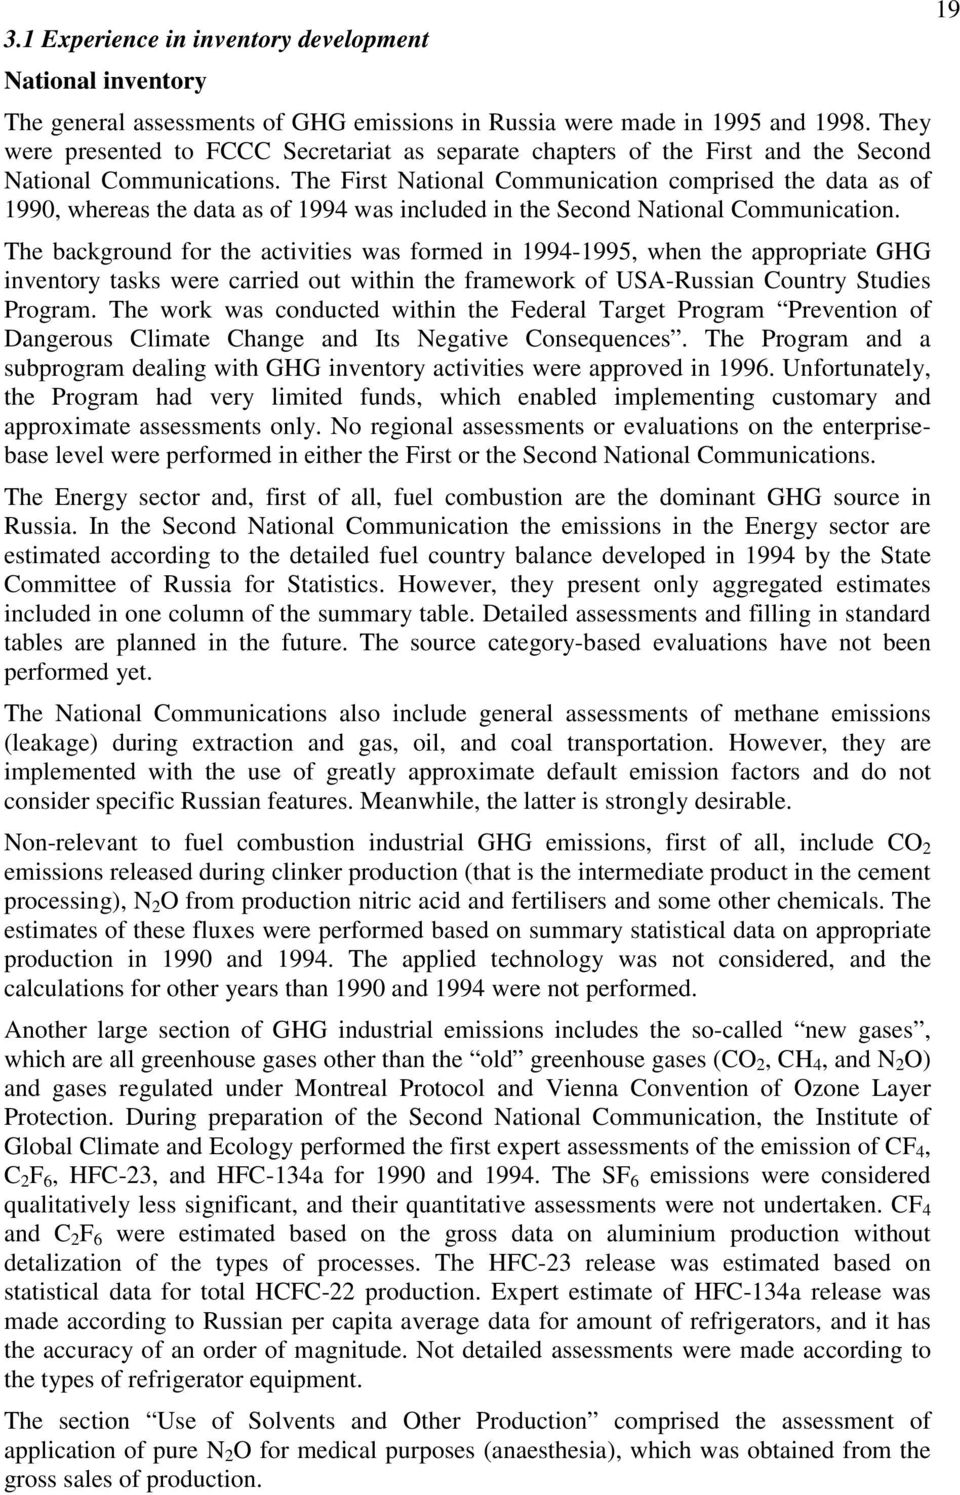 The First National Communication comprised the data as of 1990, whereas the data as of 1994 was included in the Second National Communication.